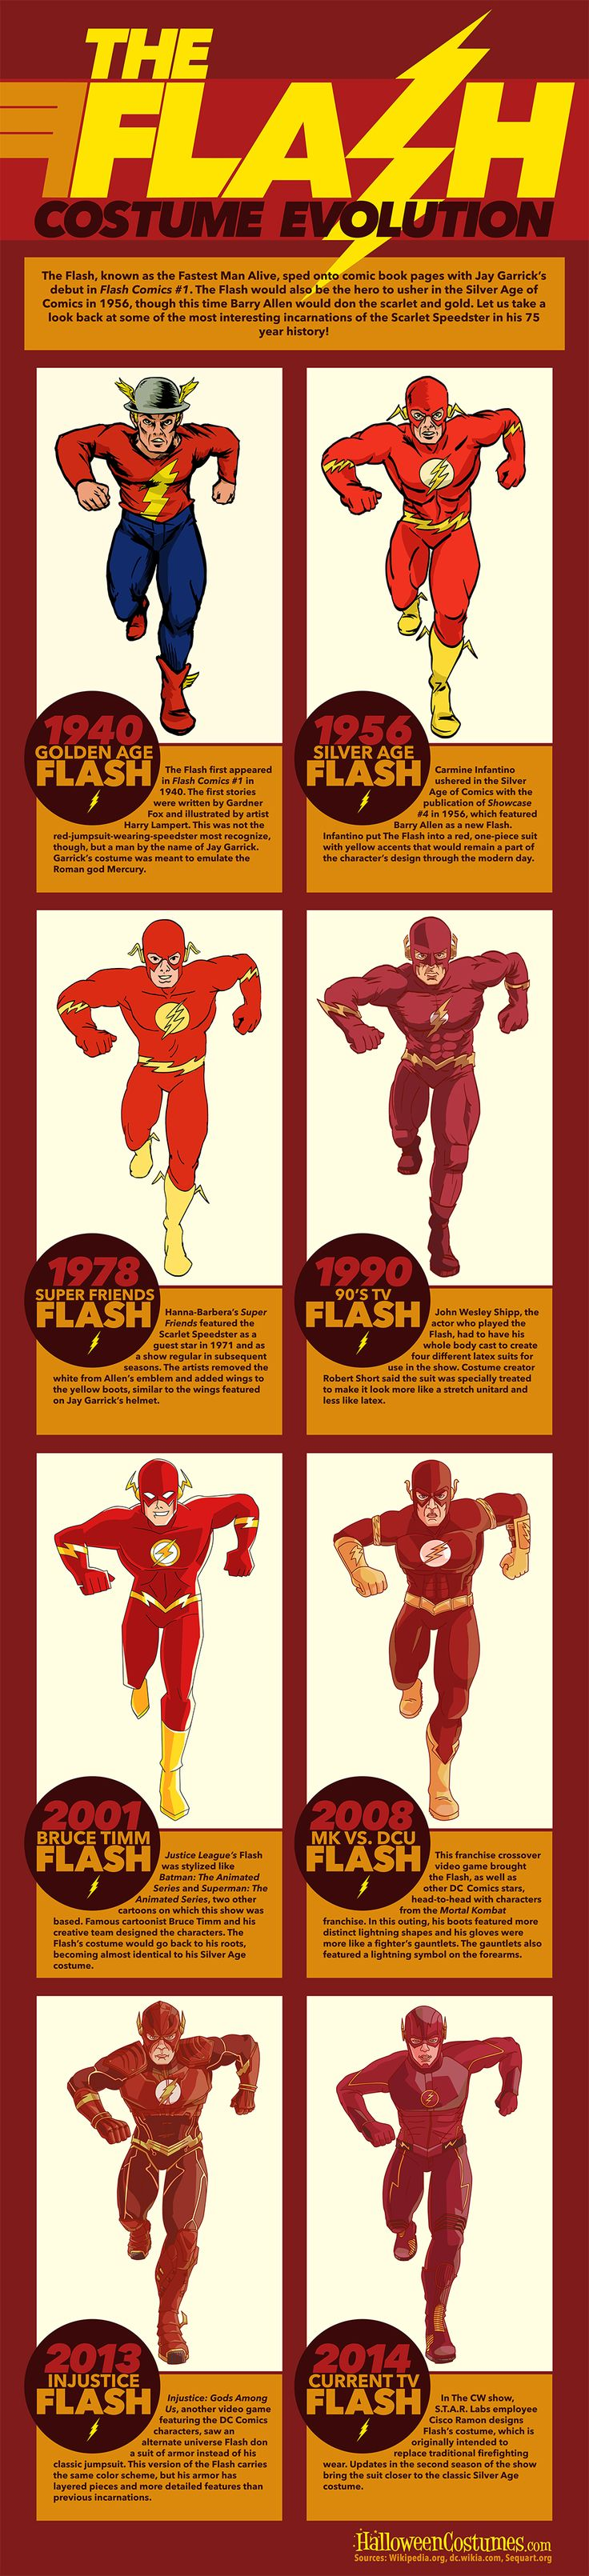 Evolução do uniforme do Flash